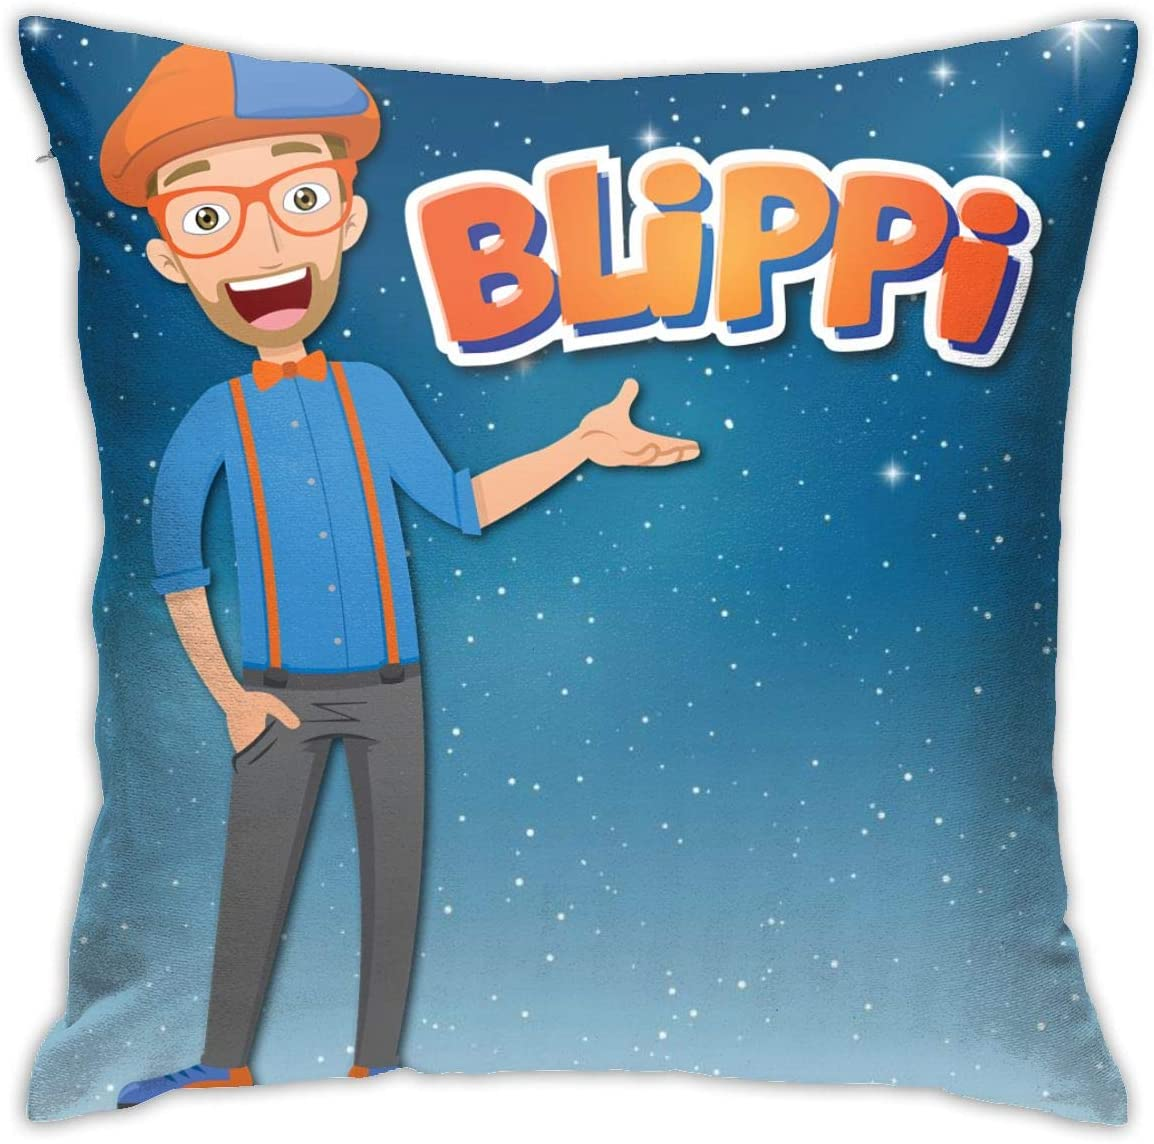 Trzrwfstwz Blippi Pillow,Home Decorative Throw Pillow Cover for Couch/Sofa/Bedroom/Livingroom/Kitchen/Car 18 X 18 Inch Square Pillow Case